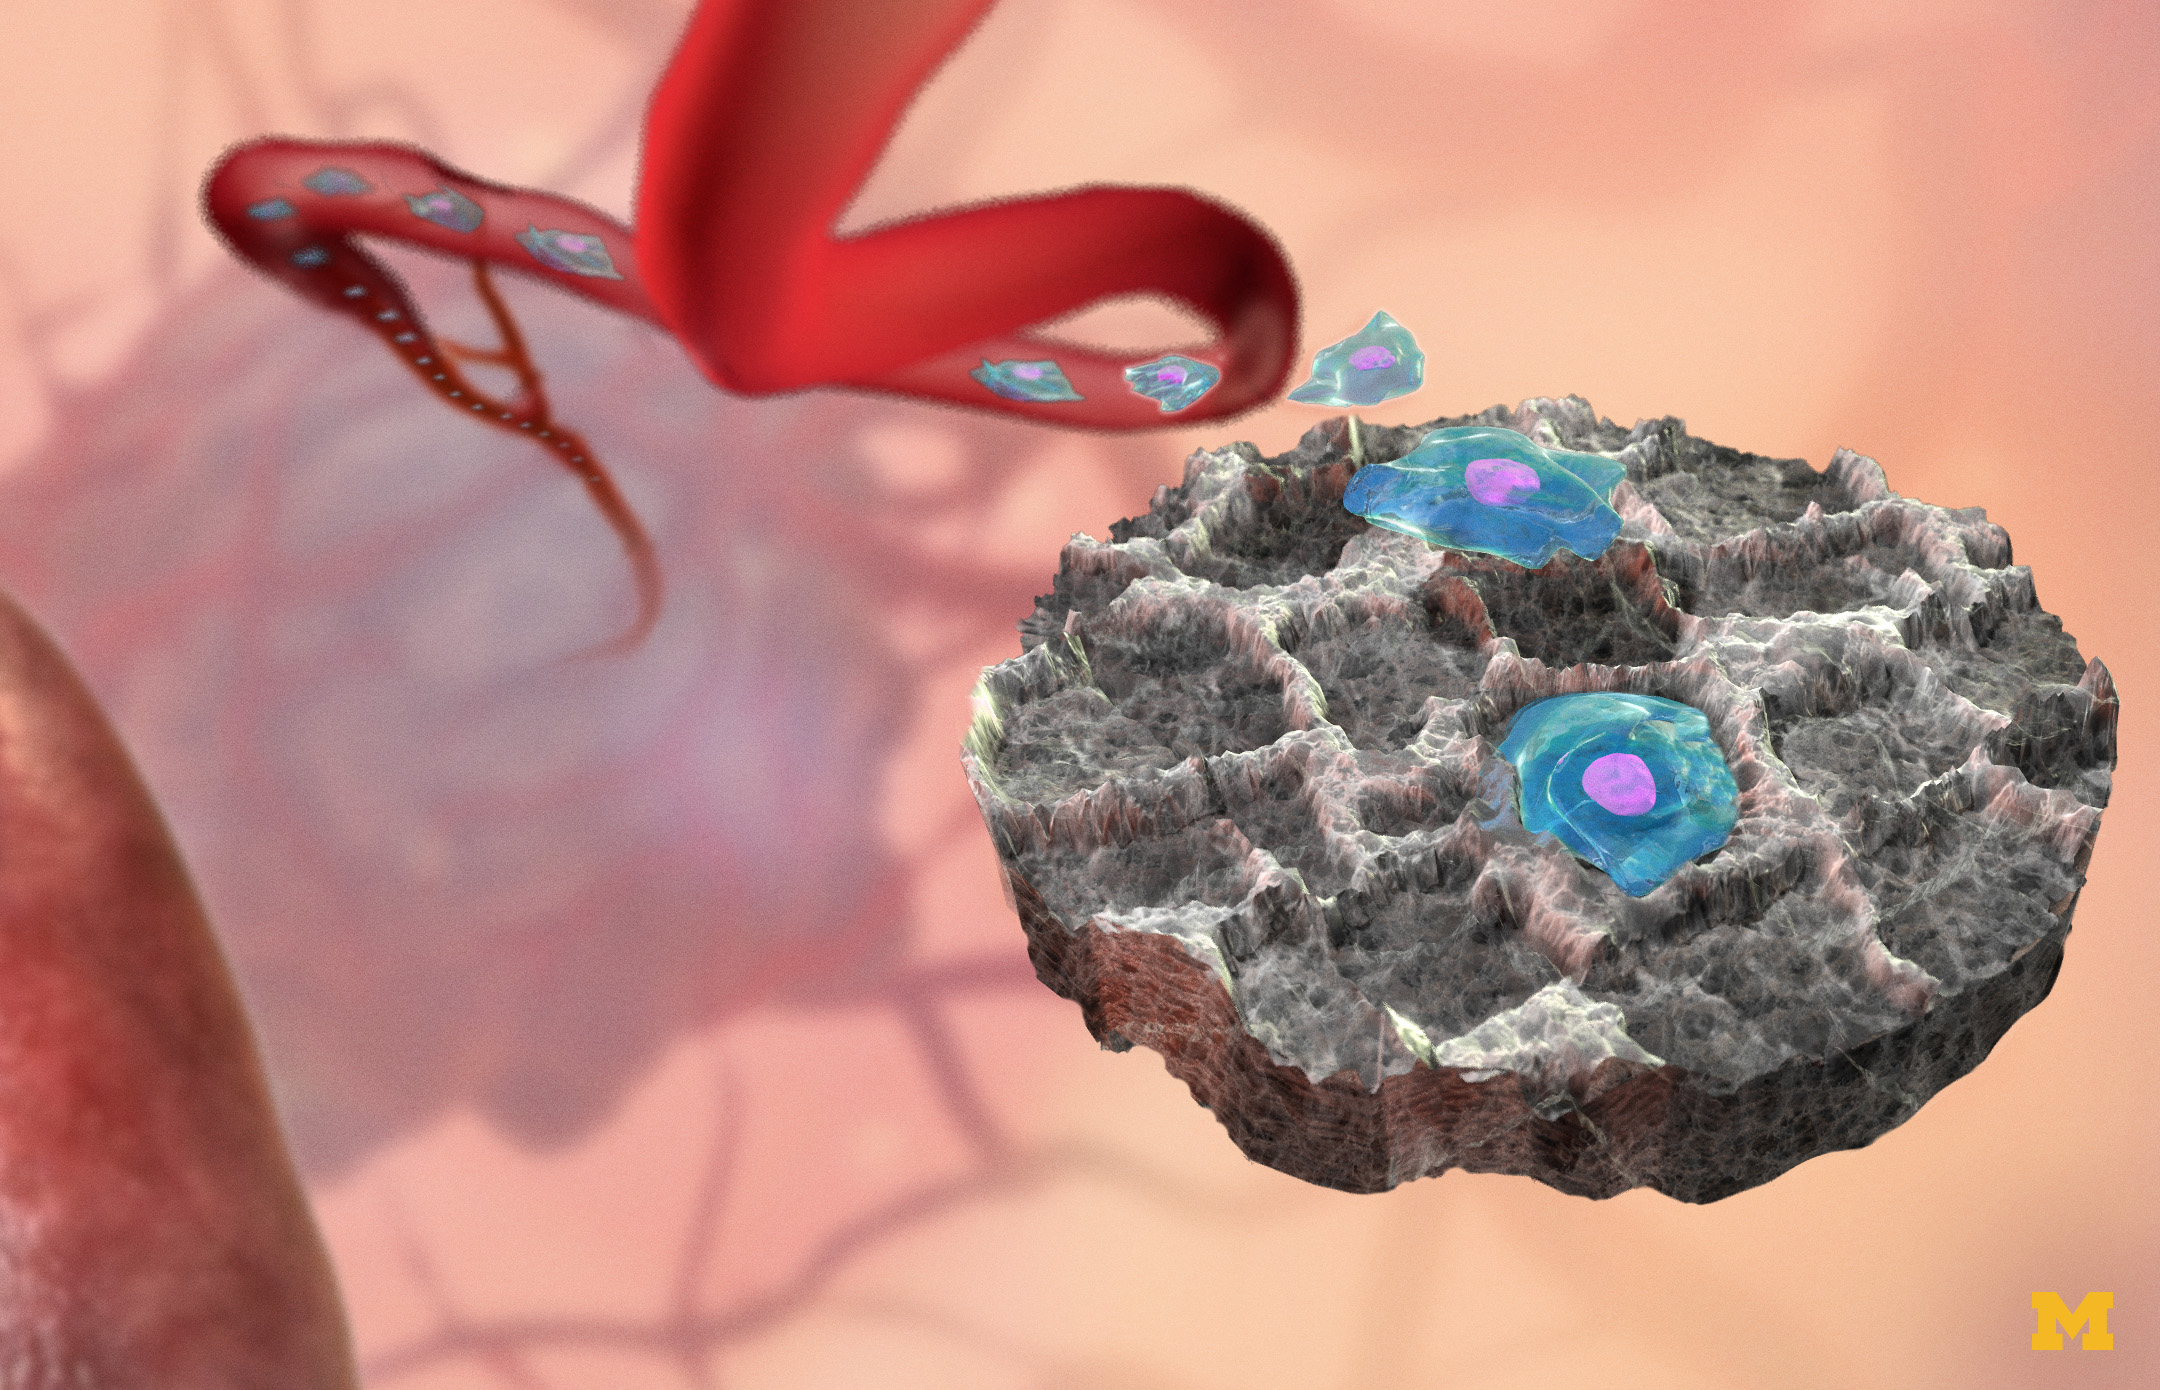 Conceptual illustration of implantable sponge-like device attracts cancer cells from the bloodstream.